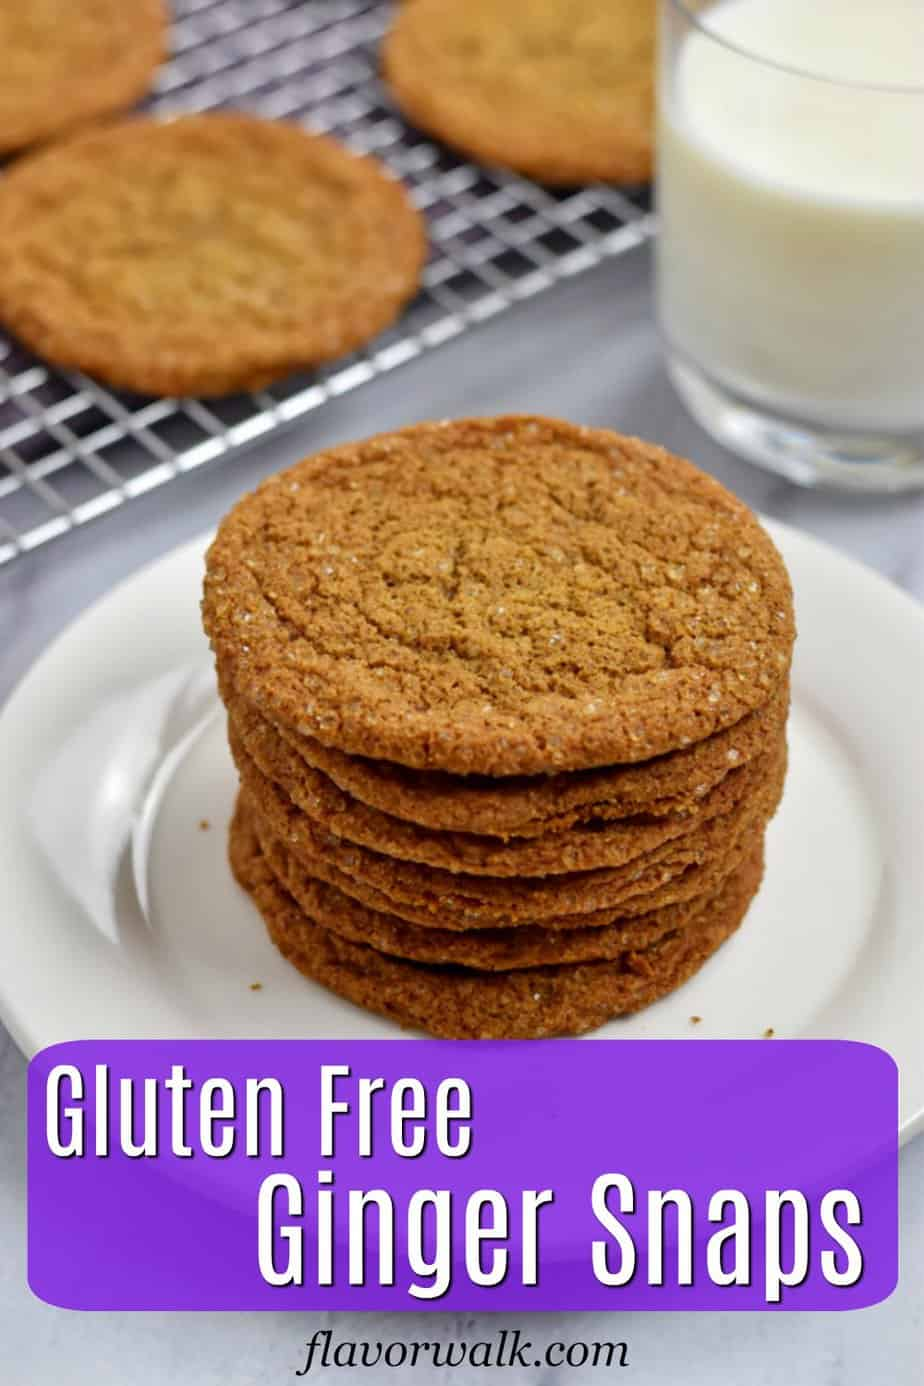 Stack of gluten free ginger snaps on small white plate with glass of milk and more cookies on wire rack in the background with purple text overlay near the bottom